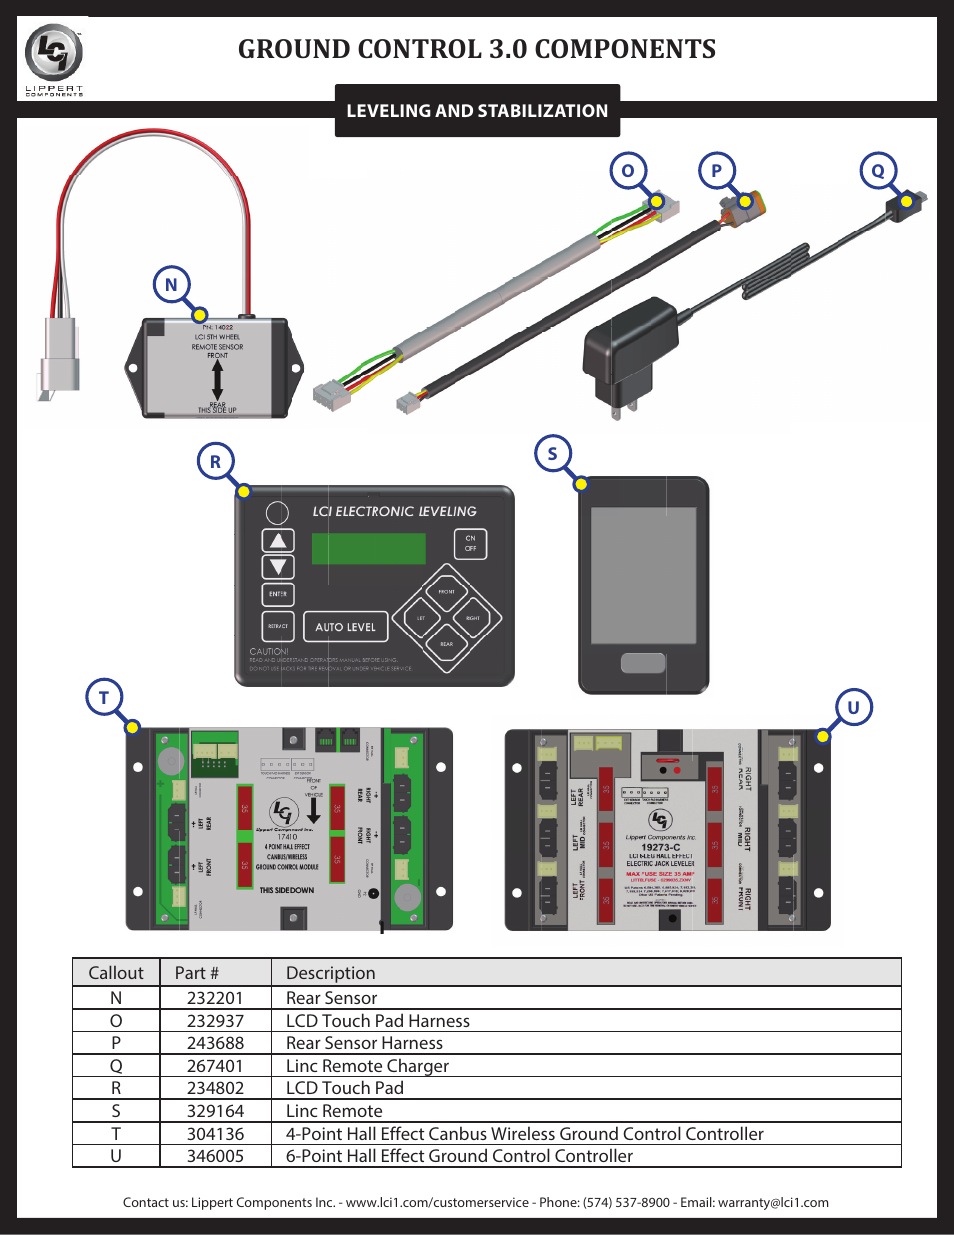 SPECIFICATION SUBMITTAL Page Job Name: Job Number: Model Numbers: QS System QSE-CI-DMX Control Interfaces e 5 SELV / PELV / NEC ® Class 2 QS Link Requirements and Wiring • System communicaion t uses SELV / PELV / NEC ® Class 2 wiring. • Wiring can be daisy-chained or T-tapped (see below).